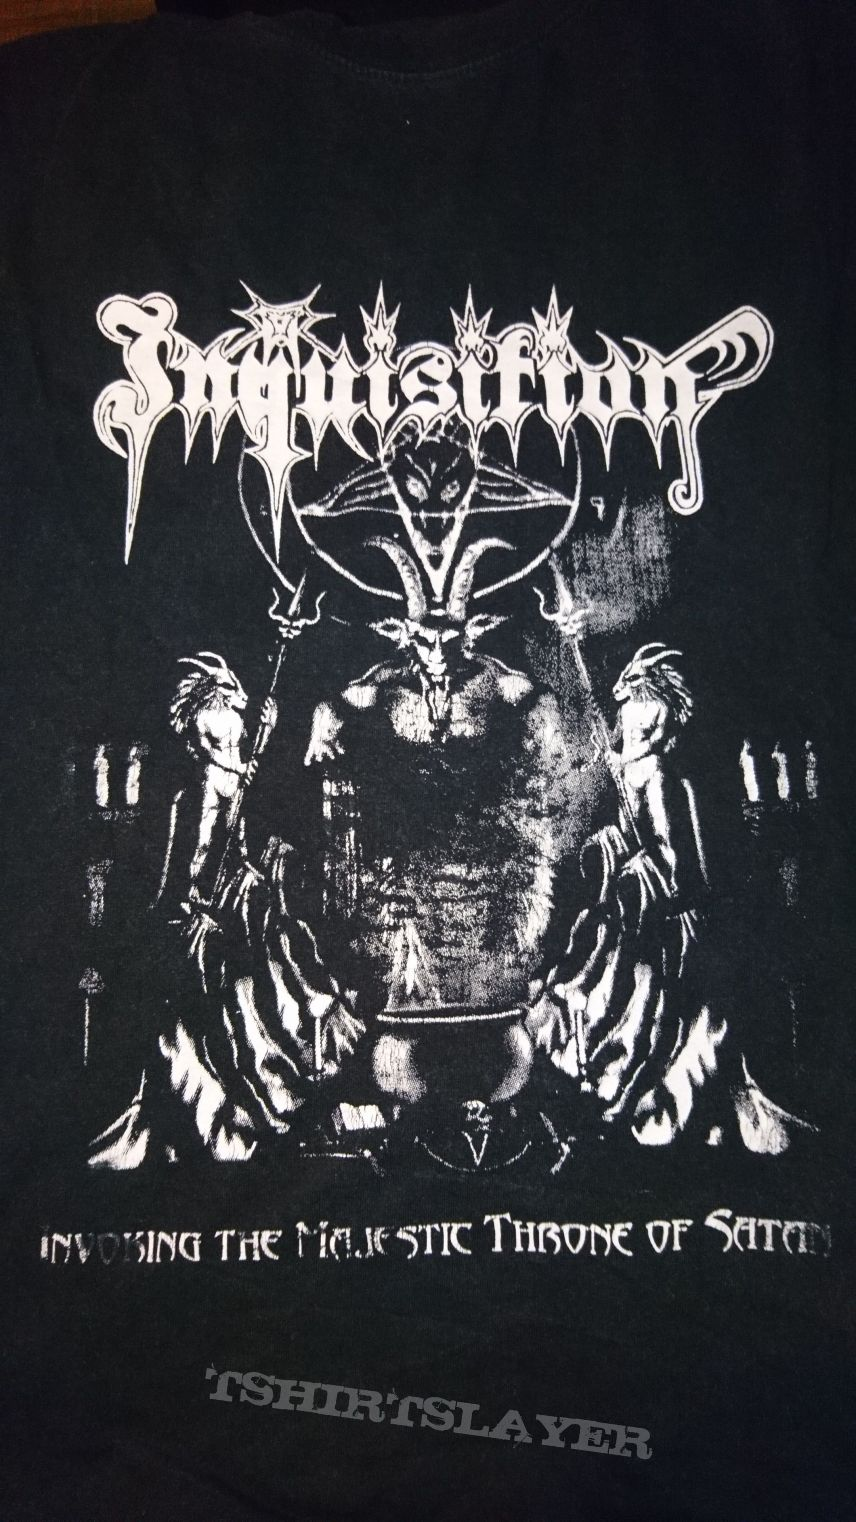 Inquisition Invoking The Majestic Throne Of Satan IncredibleHolk&...